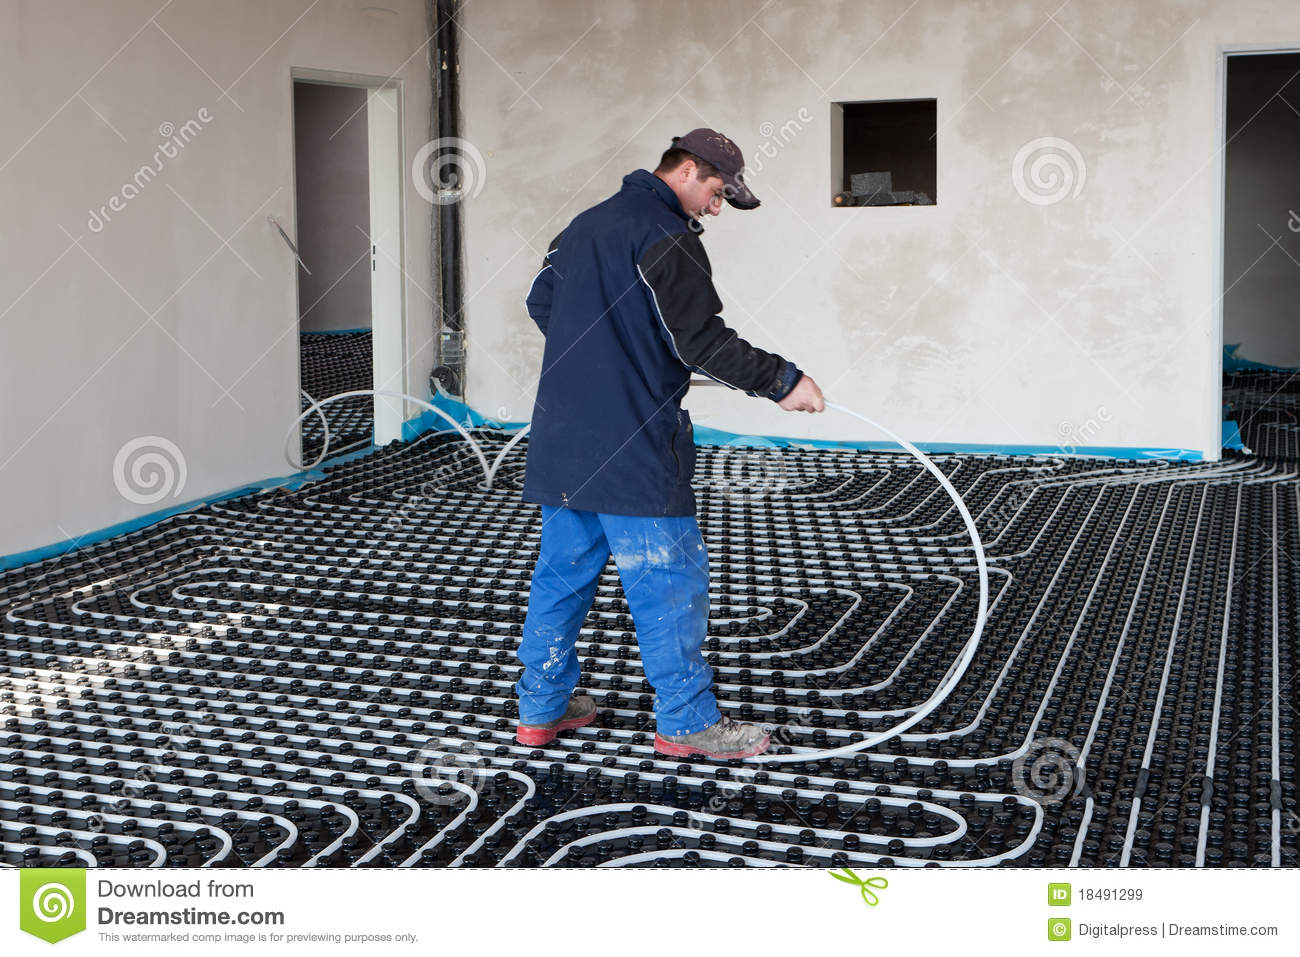 Underfloor Heating And Cooling Stock Image Image Of